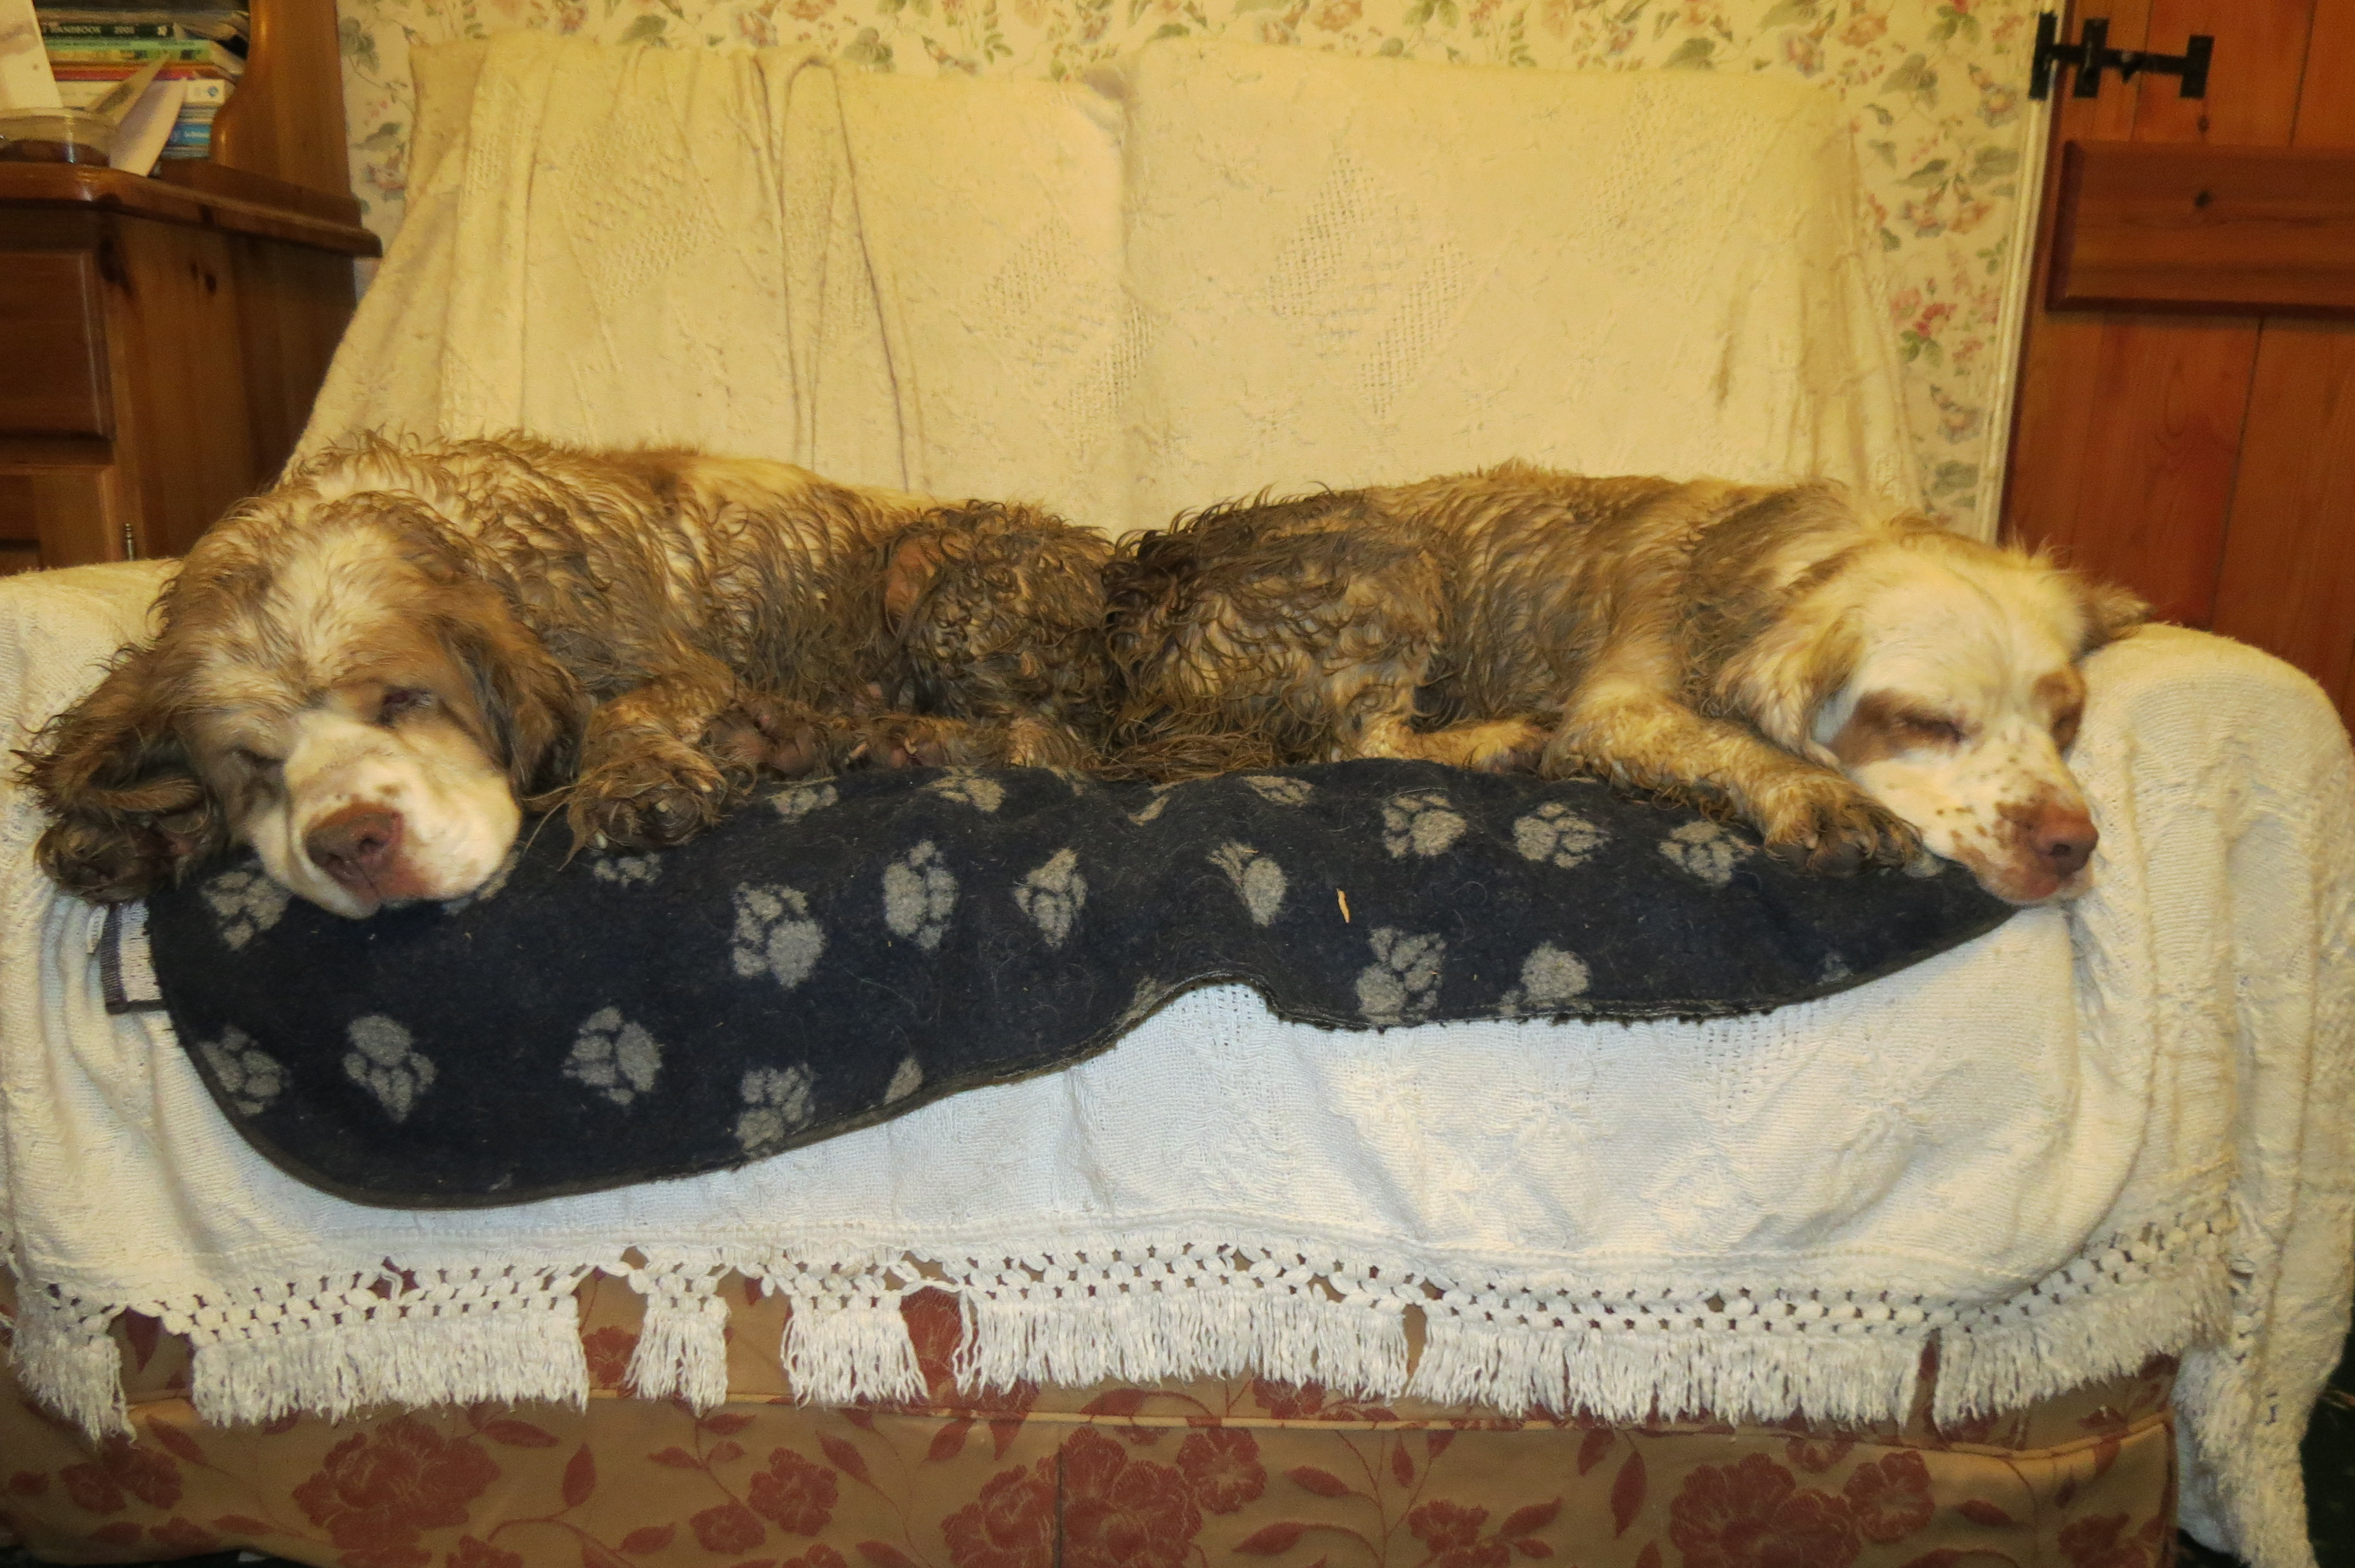 Two clumber spaniels